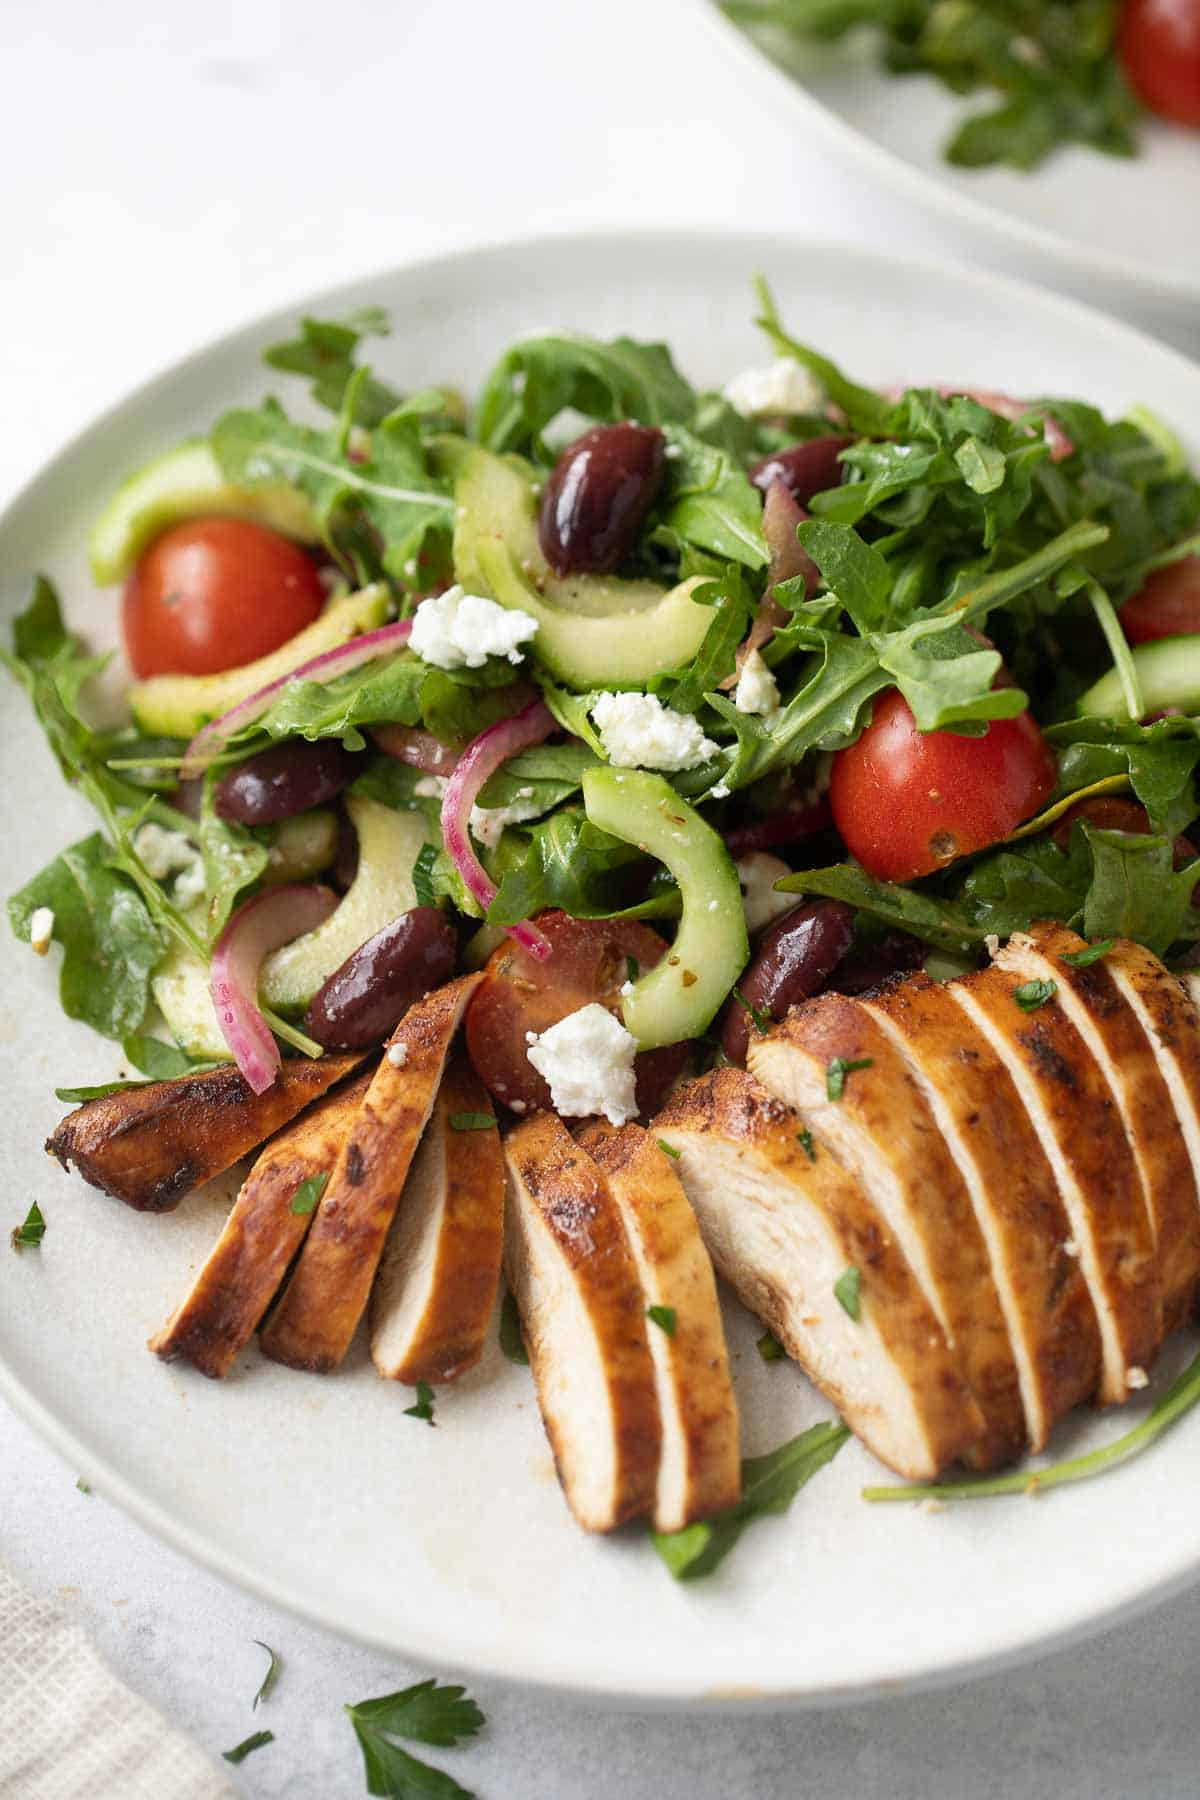 Mediterranean salad on a white plate with slices of grilled chicken breast